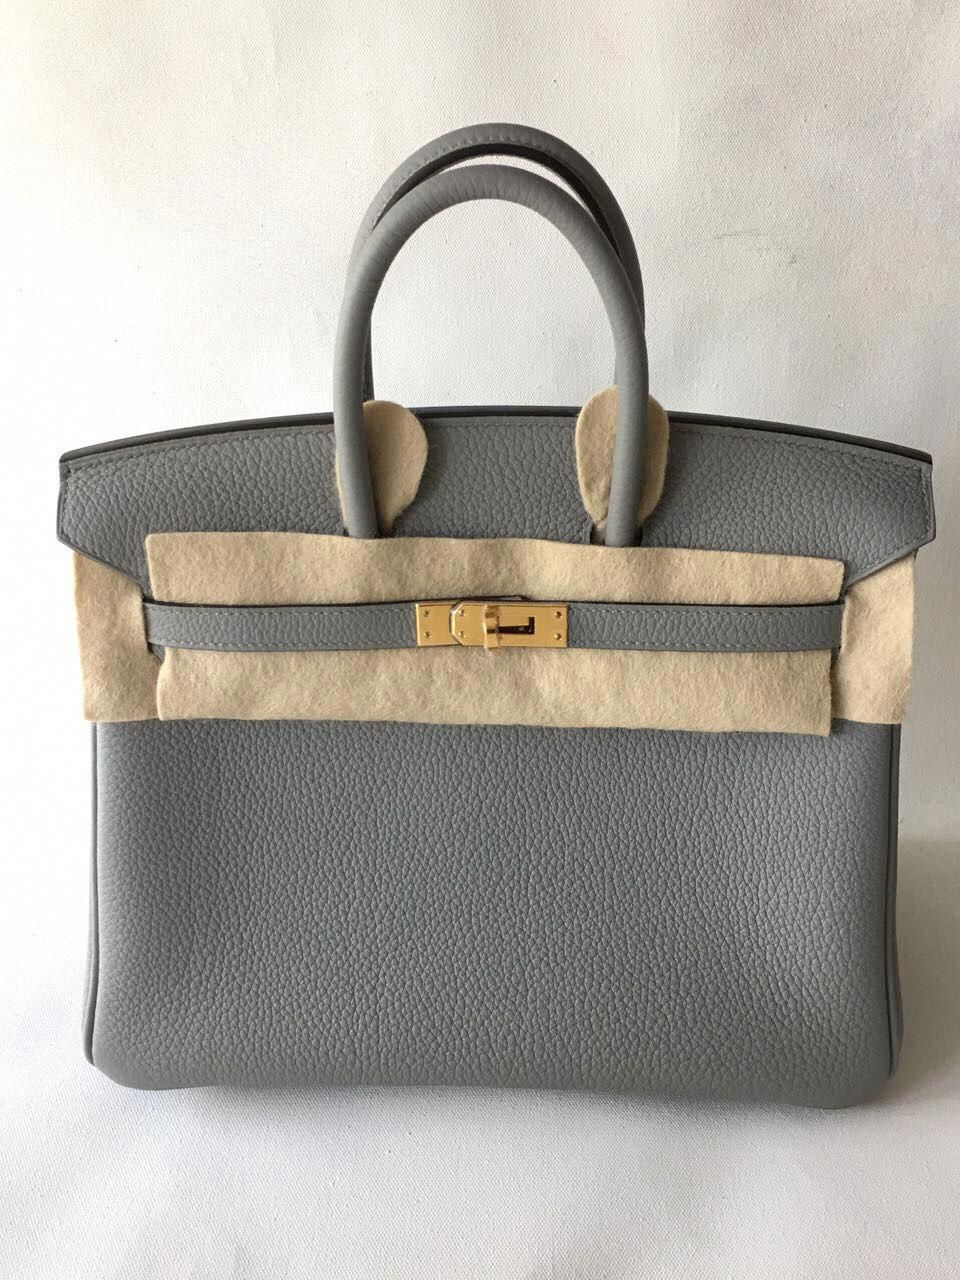 d6914ce47bf Hermès Birkin 25 Gris Mouette Togo Gold Hardware GHW X Stamp 2016   thefrenchhunter  hermes  birkin  birkin25  birkinghw  grismouette   birkingrismouette ...